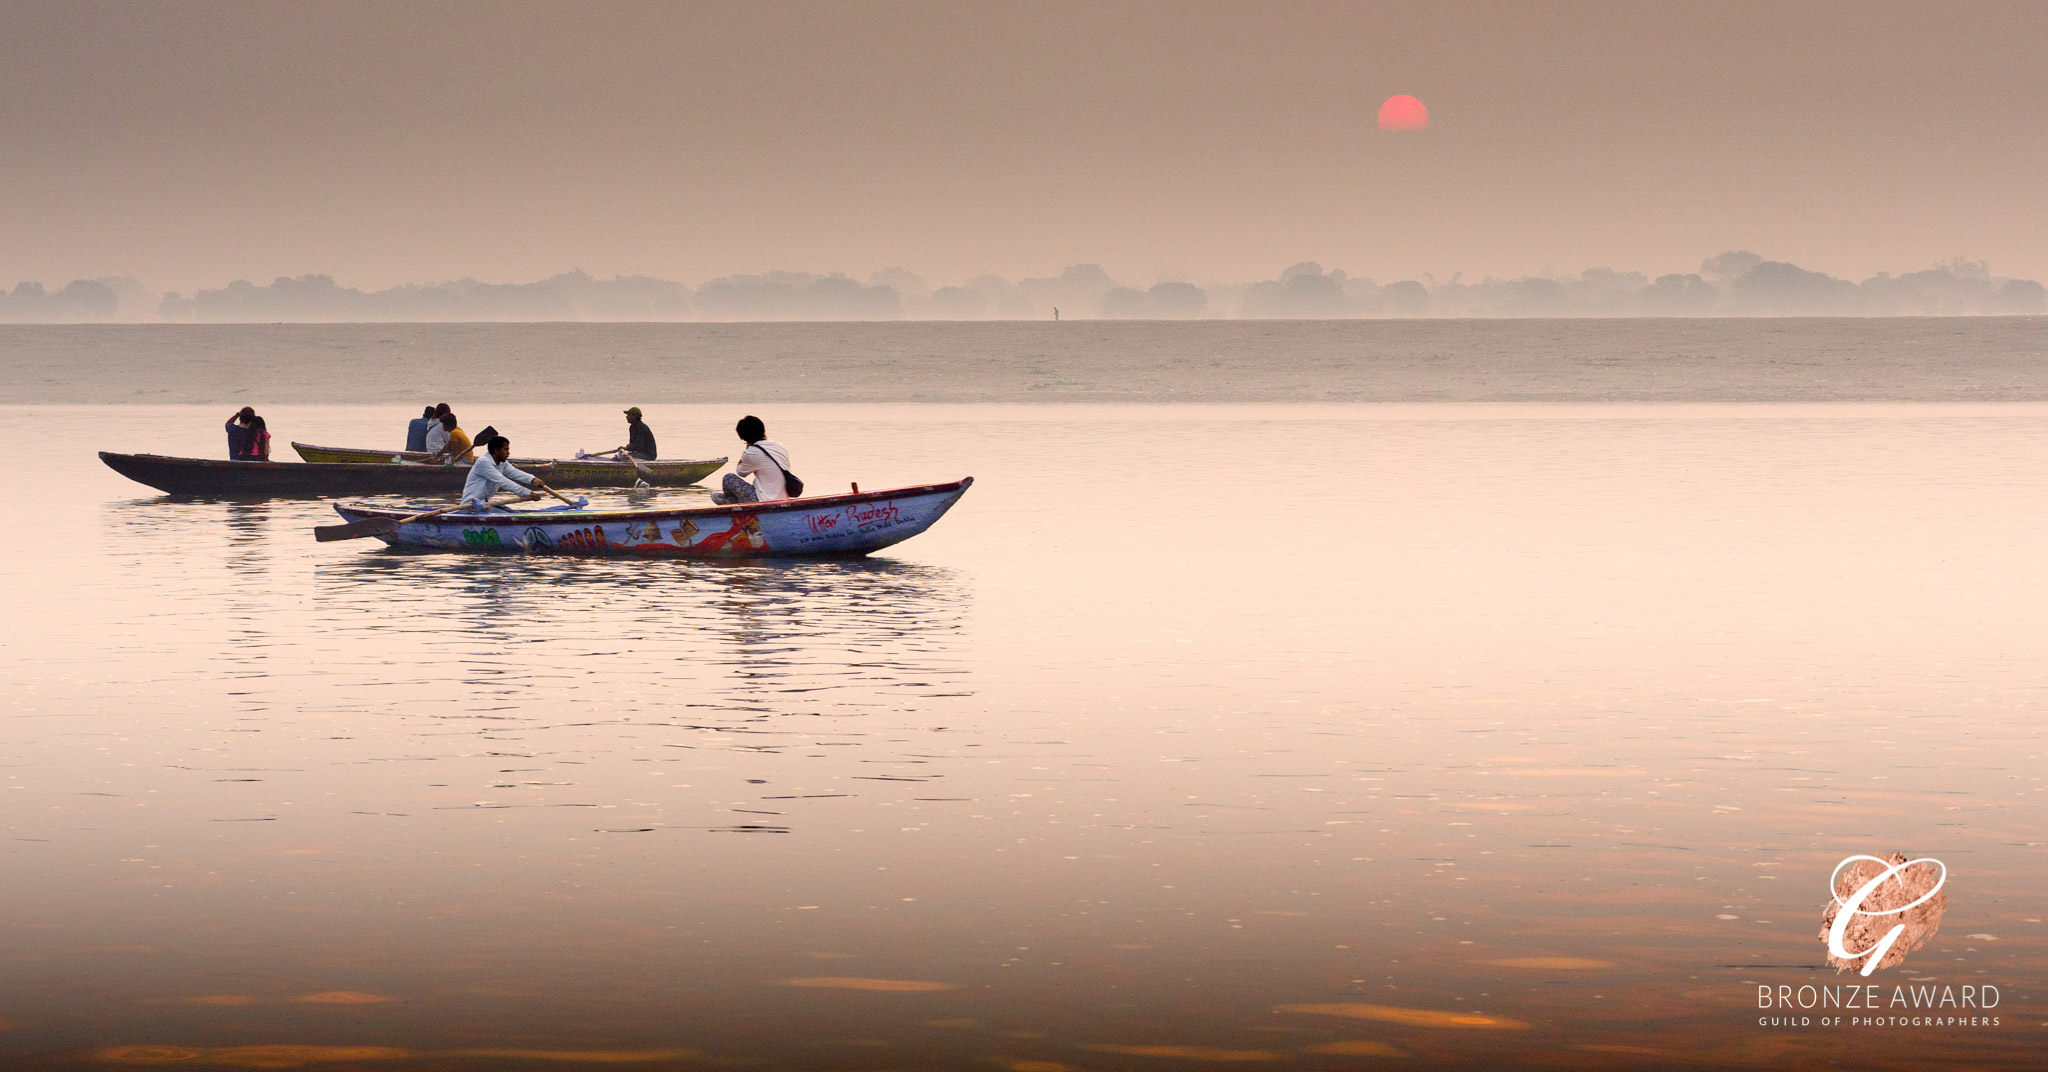 Looking over the Ganges towards the red-orange rising Sun, with rowing boats in the foreground.